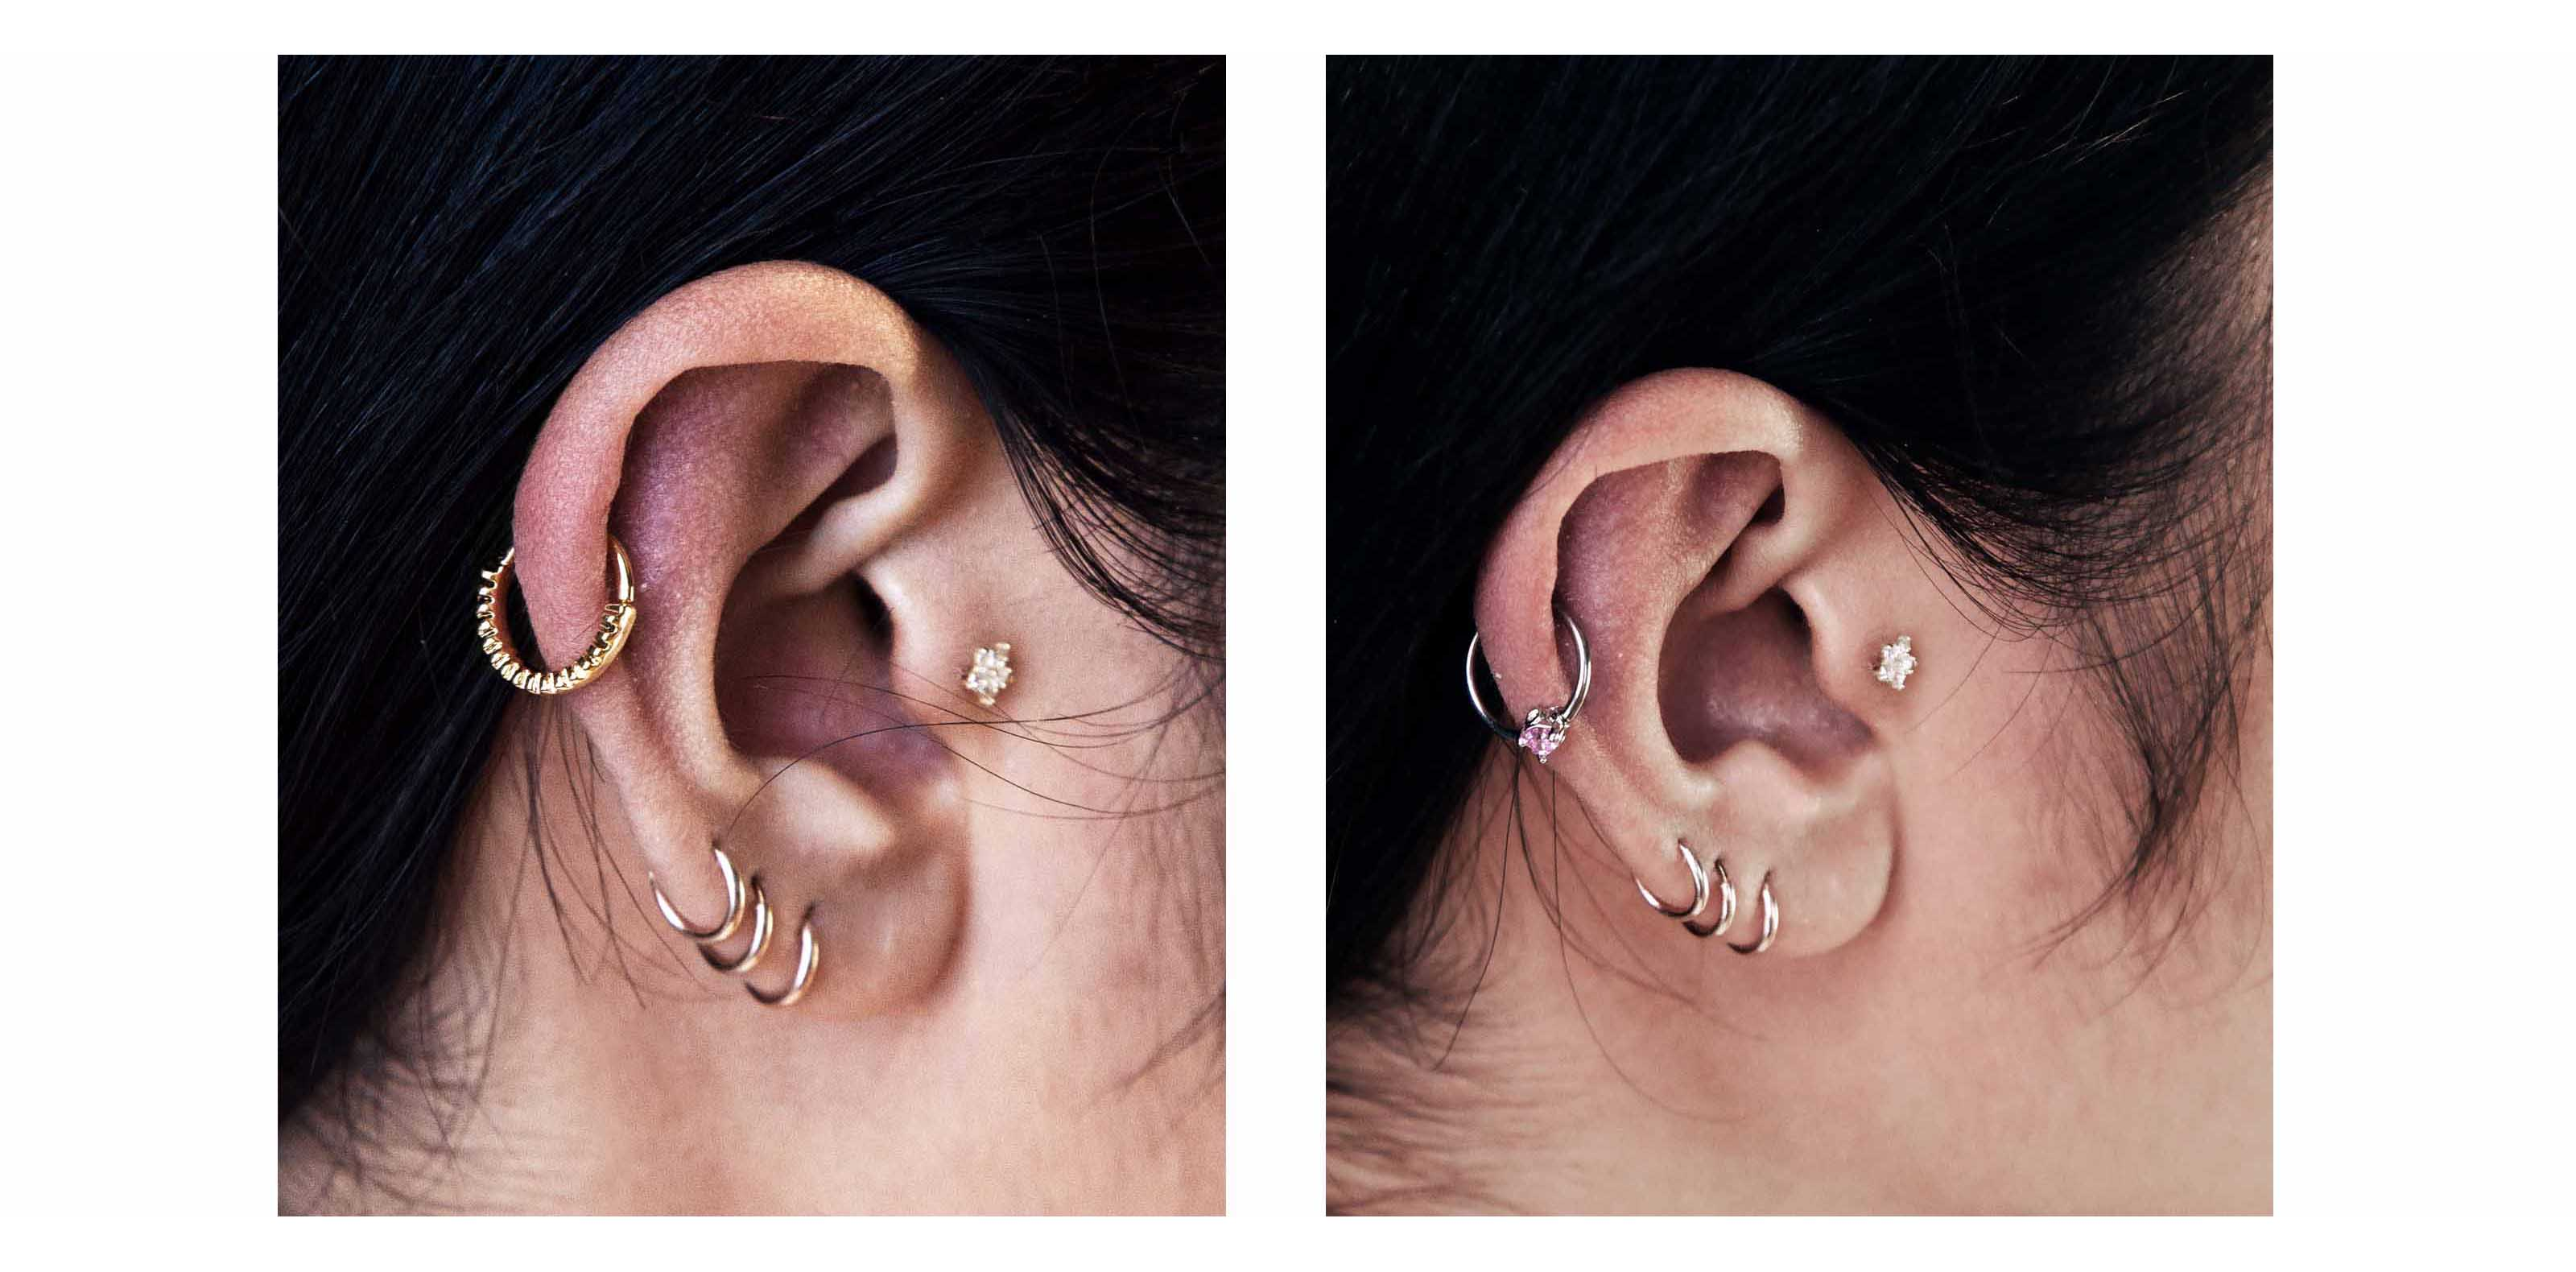 940cd2ad67b45 Curated Ear - Piercing Guide To Crush The Trend & Inspirations ...